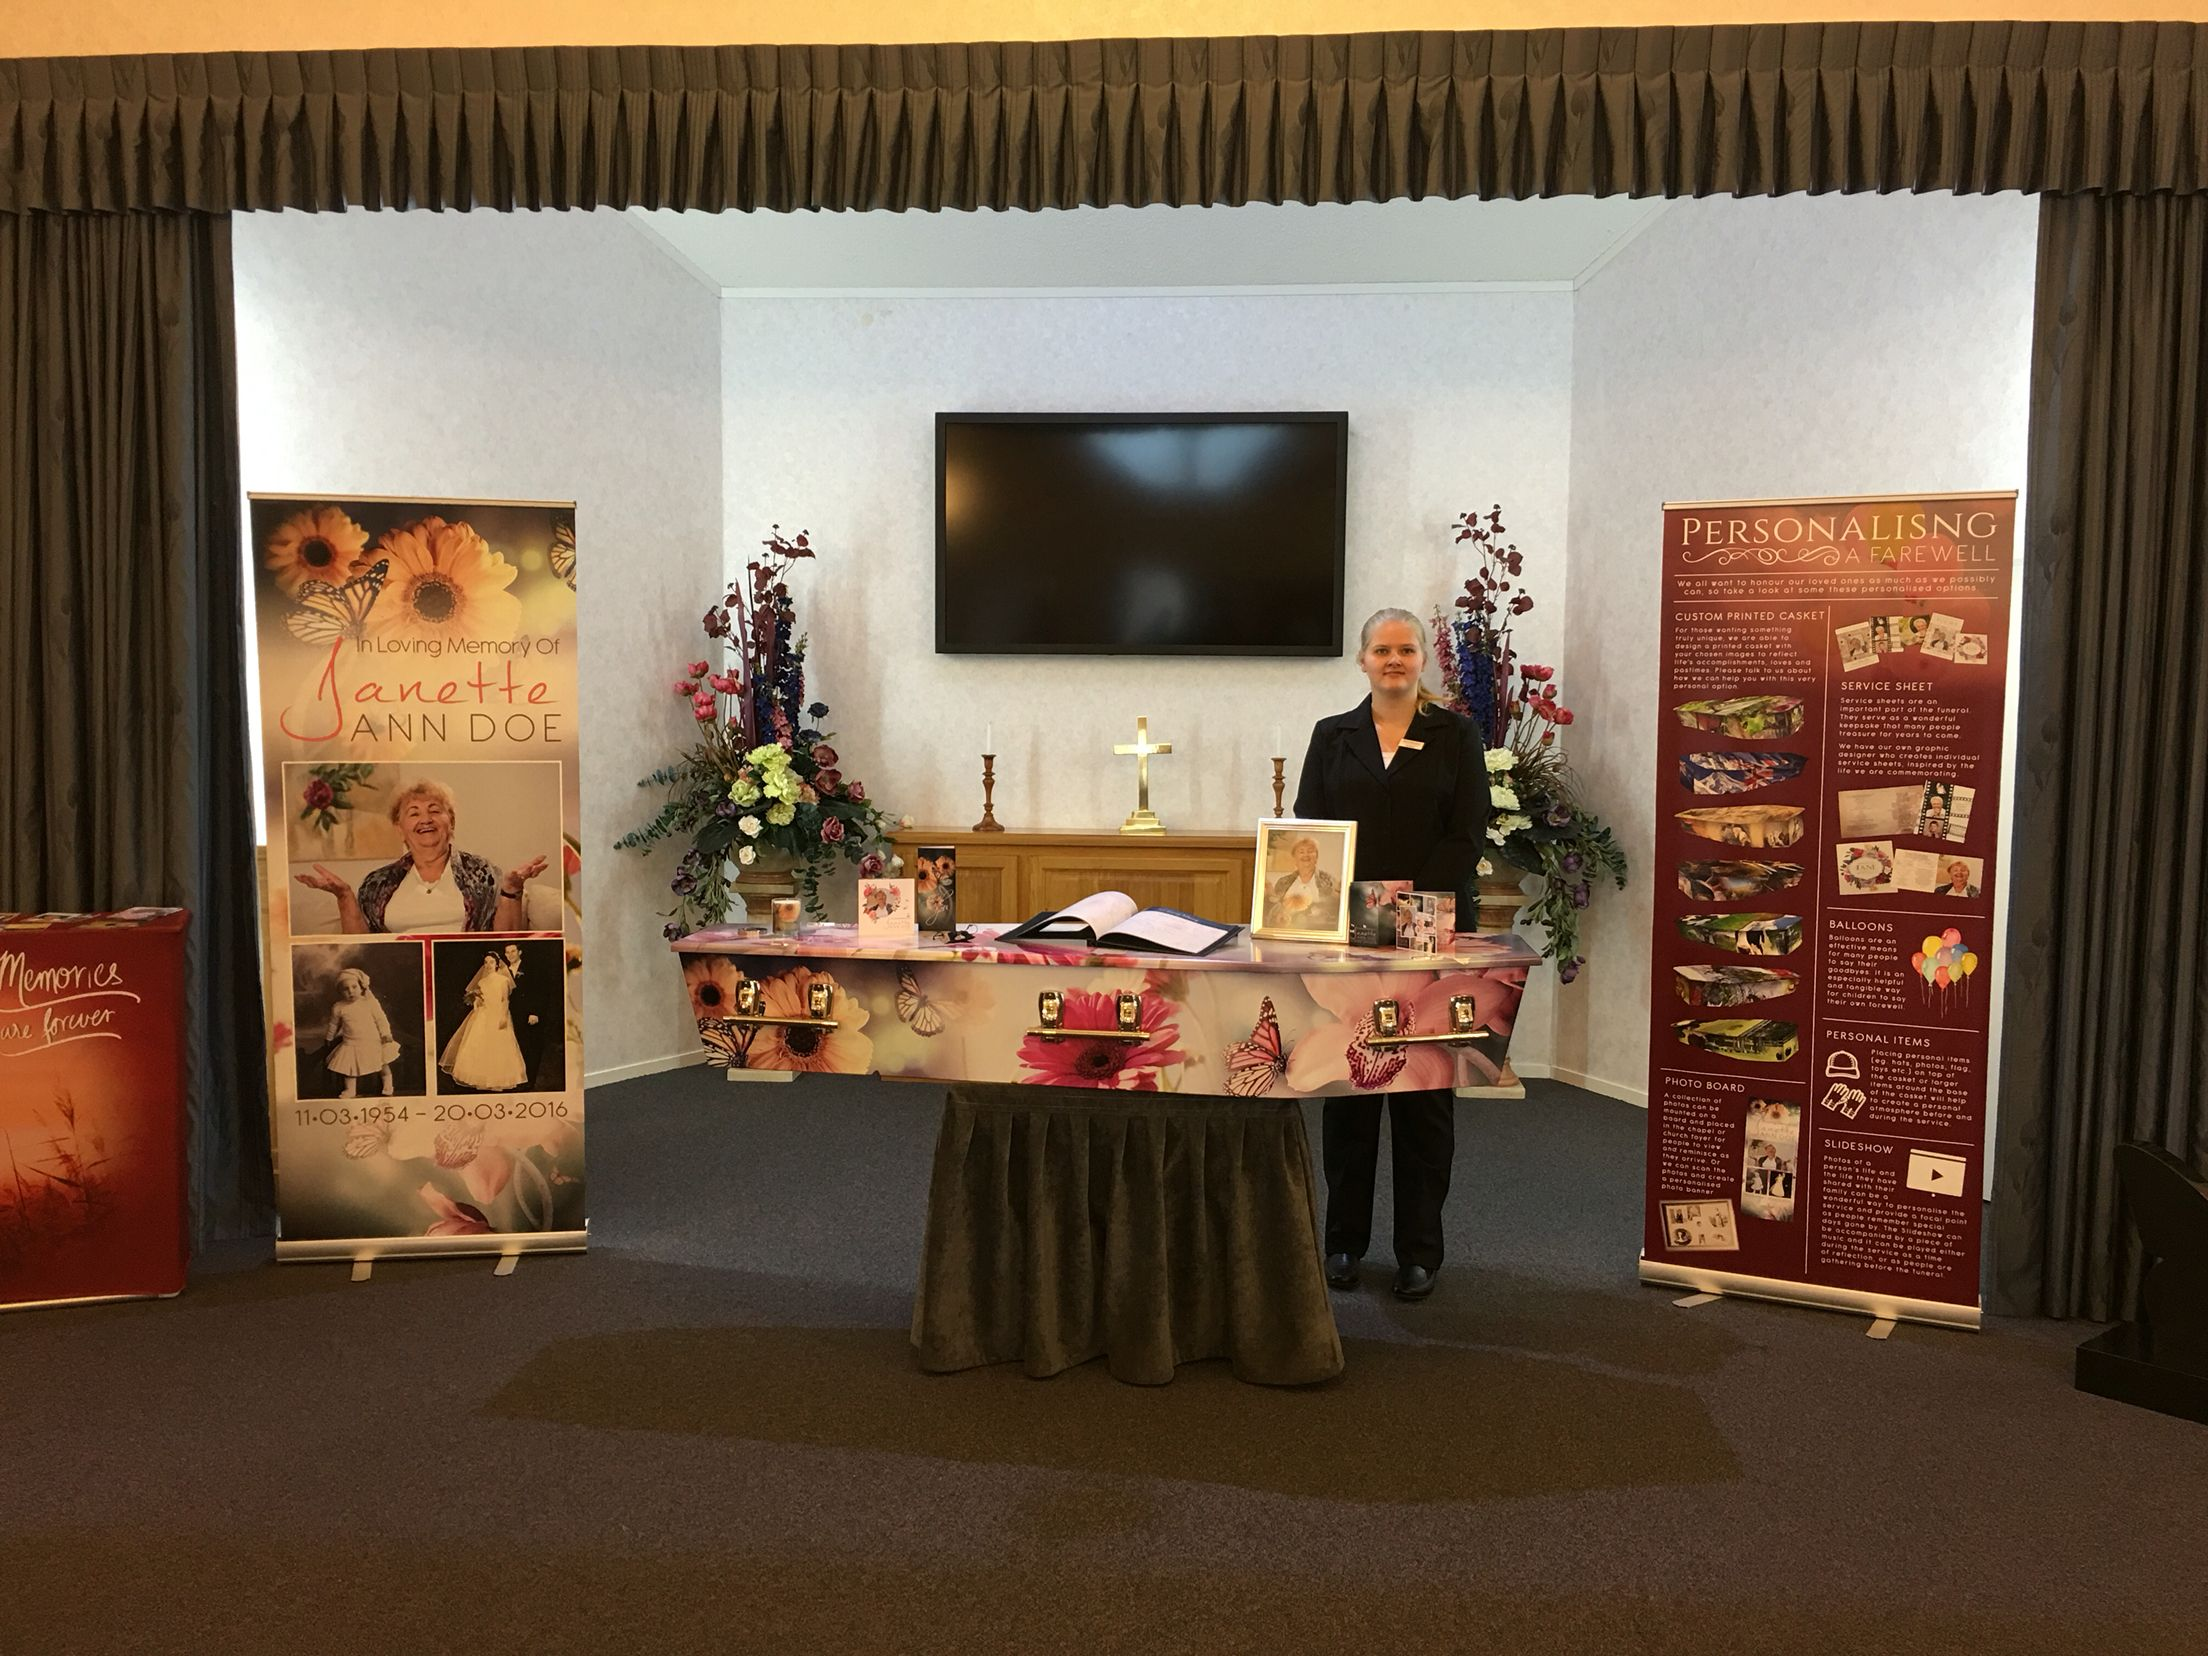 abraham s funeral home open day display personalisation caskets